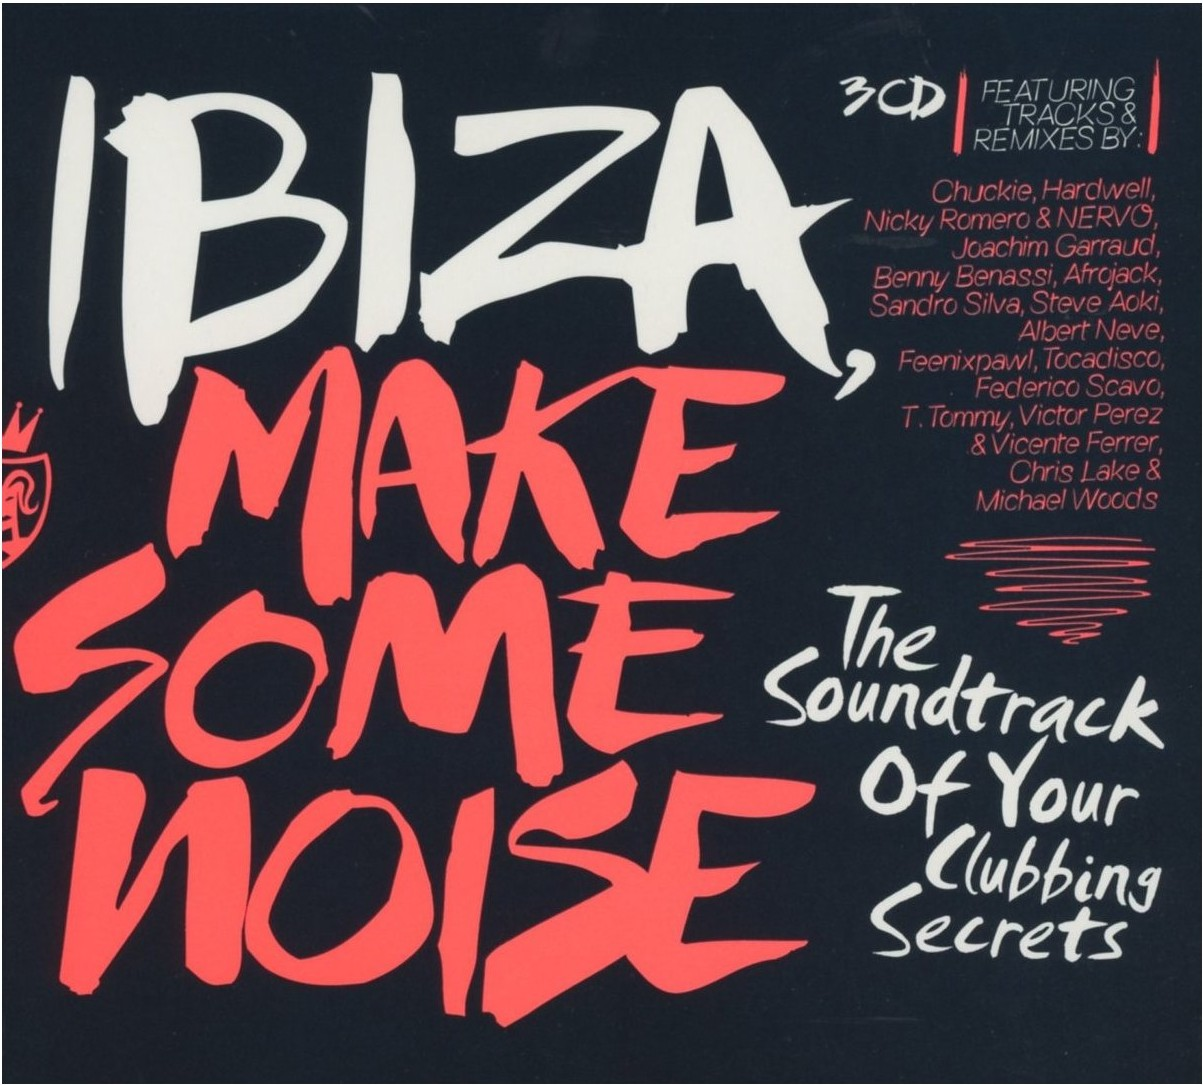 Ibiza Make Some Noise – 2013